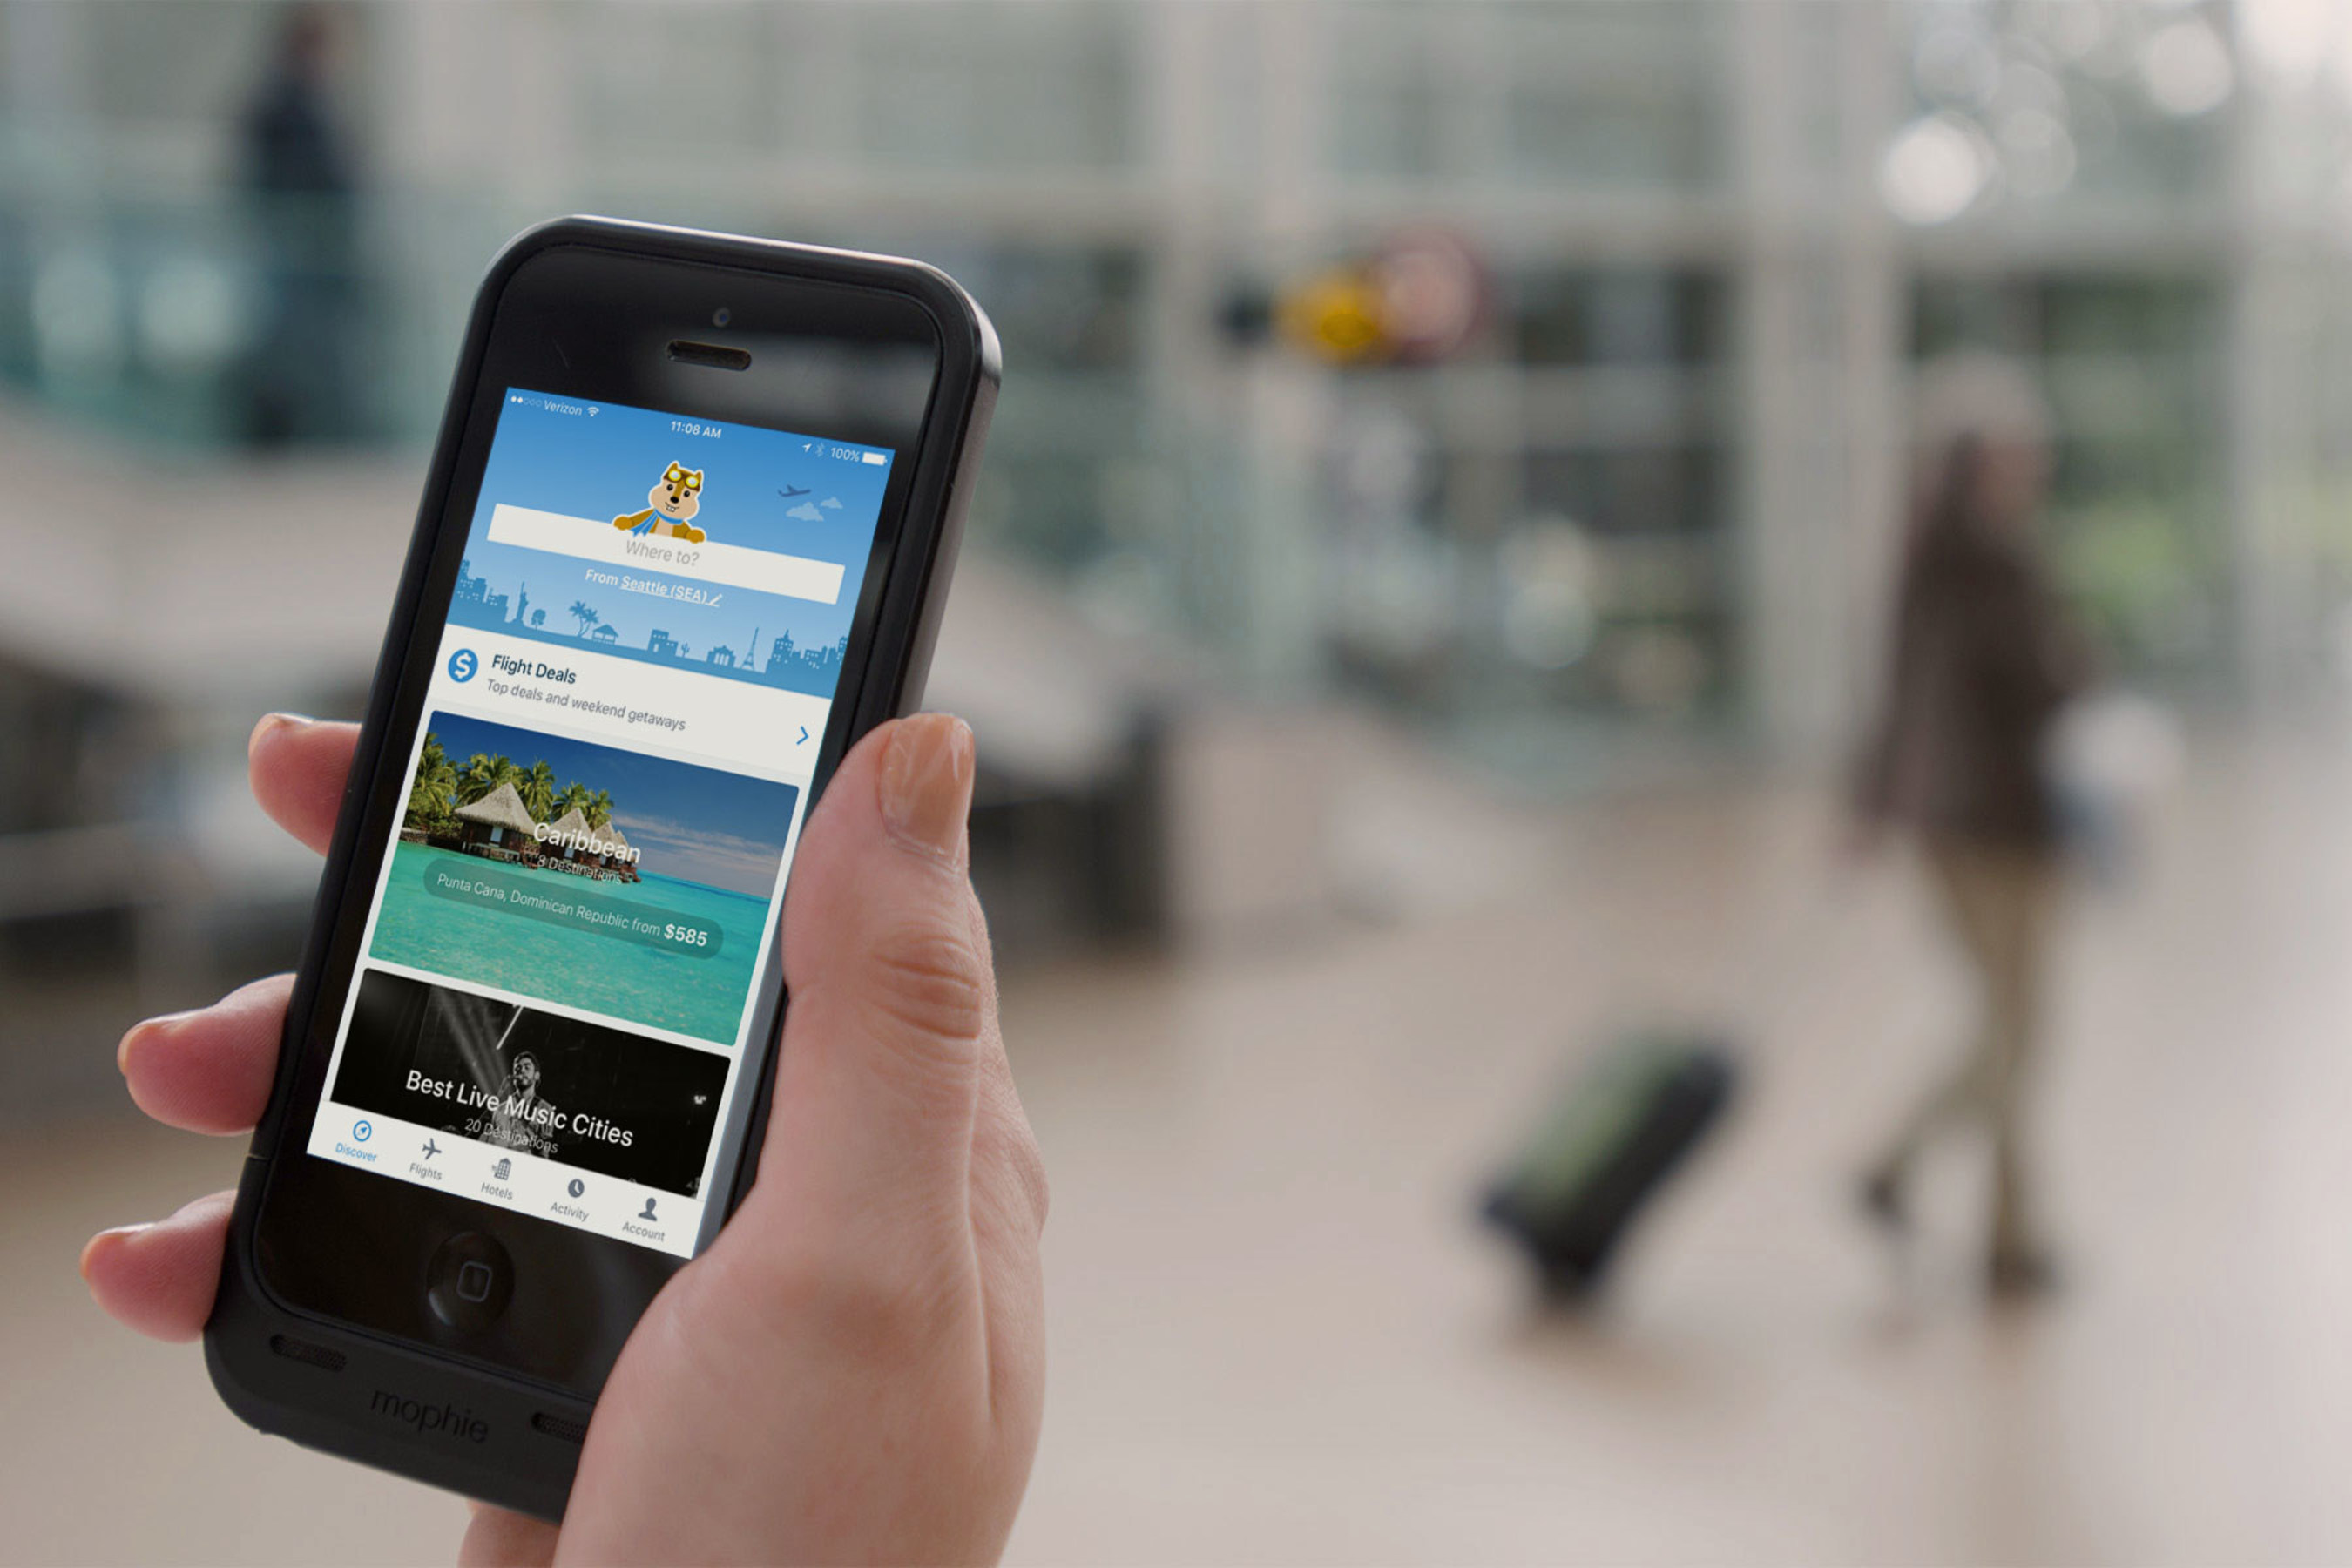 Concur today announced that it has signed a definitive agreement to acquire Hipmunk